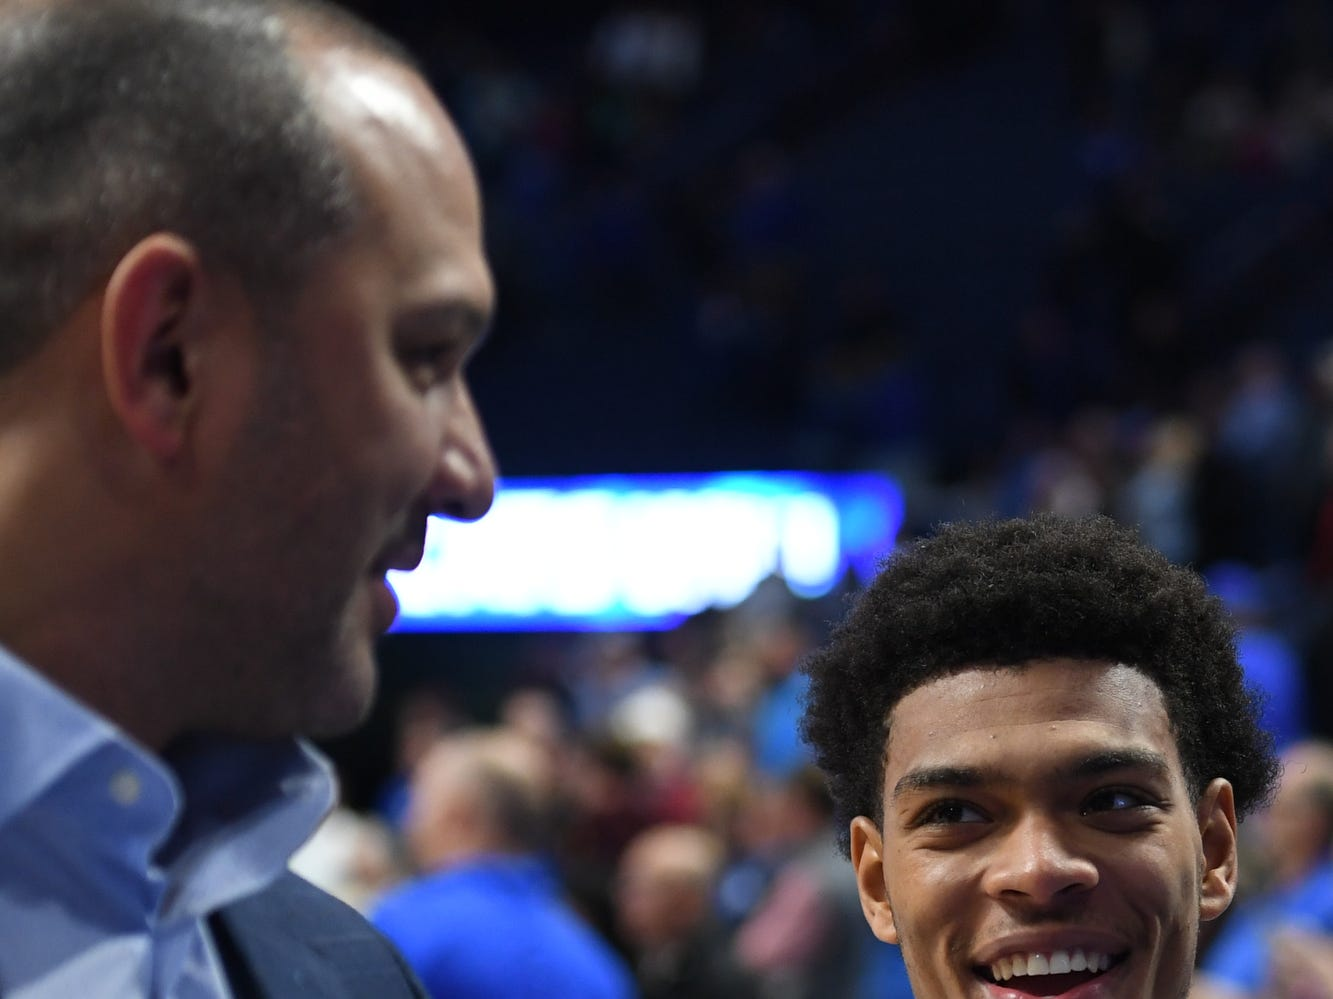 Quade Green laughs with coach Tony Barbee after the University of Kentucky basketball game against Transylvania at Rupp Arena in Lexington on Friday, Oct. 26, 2018.